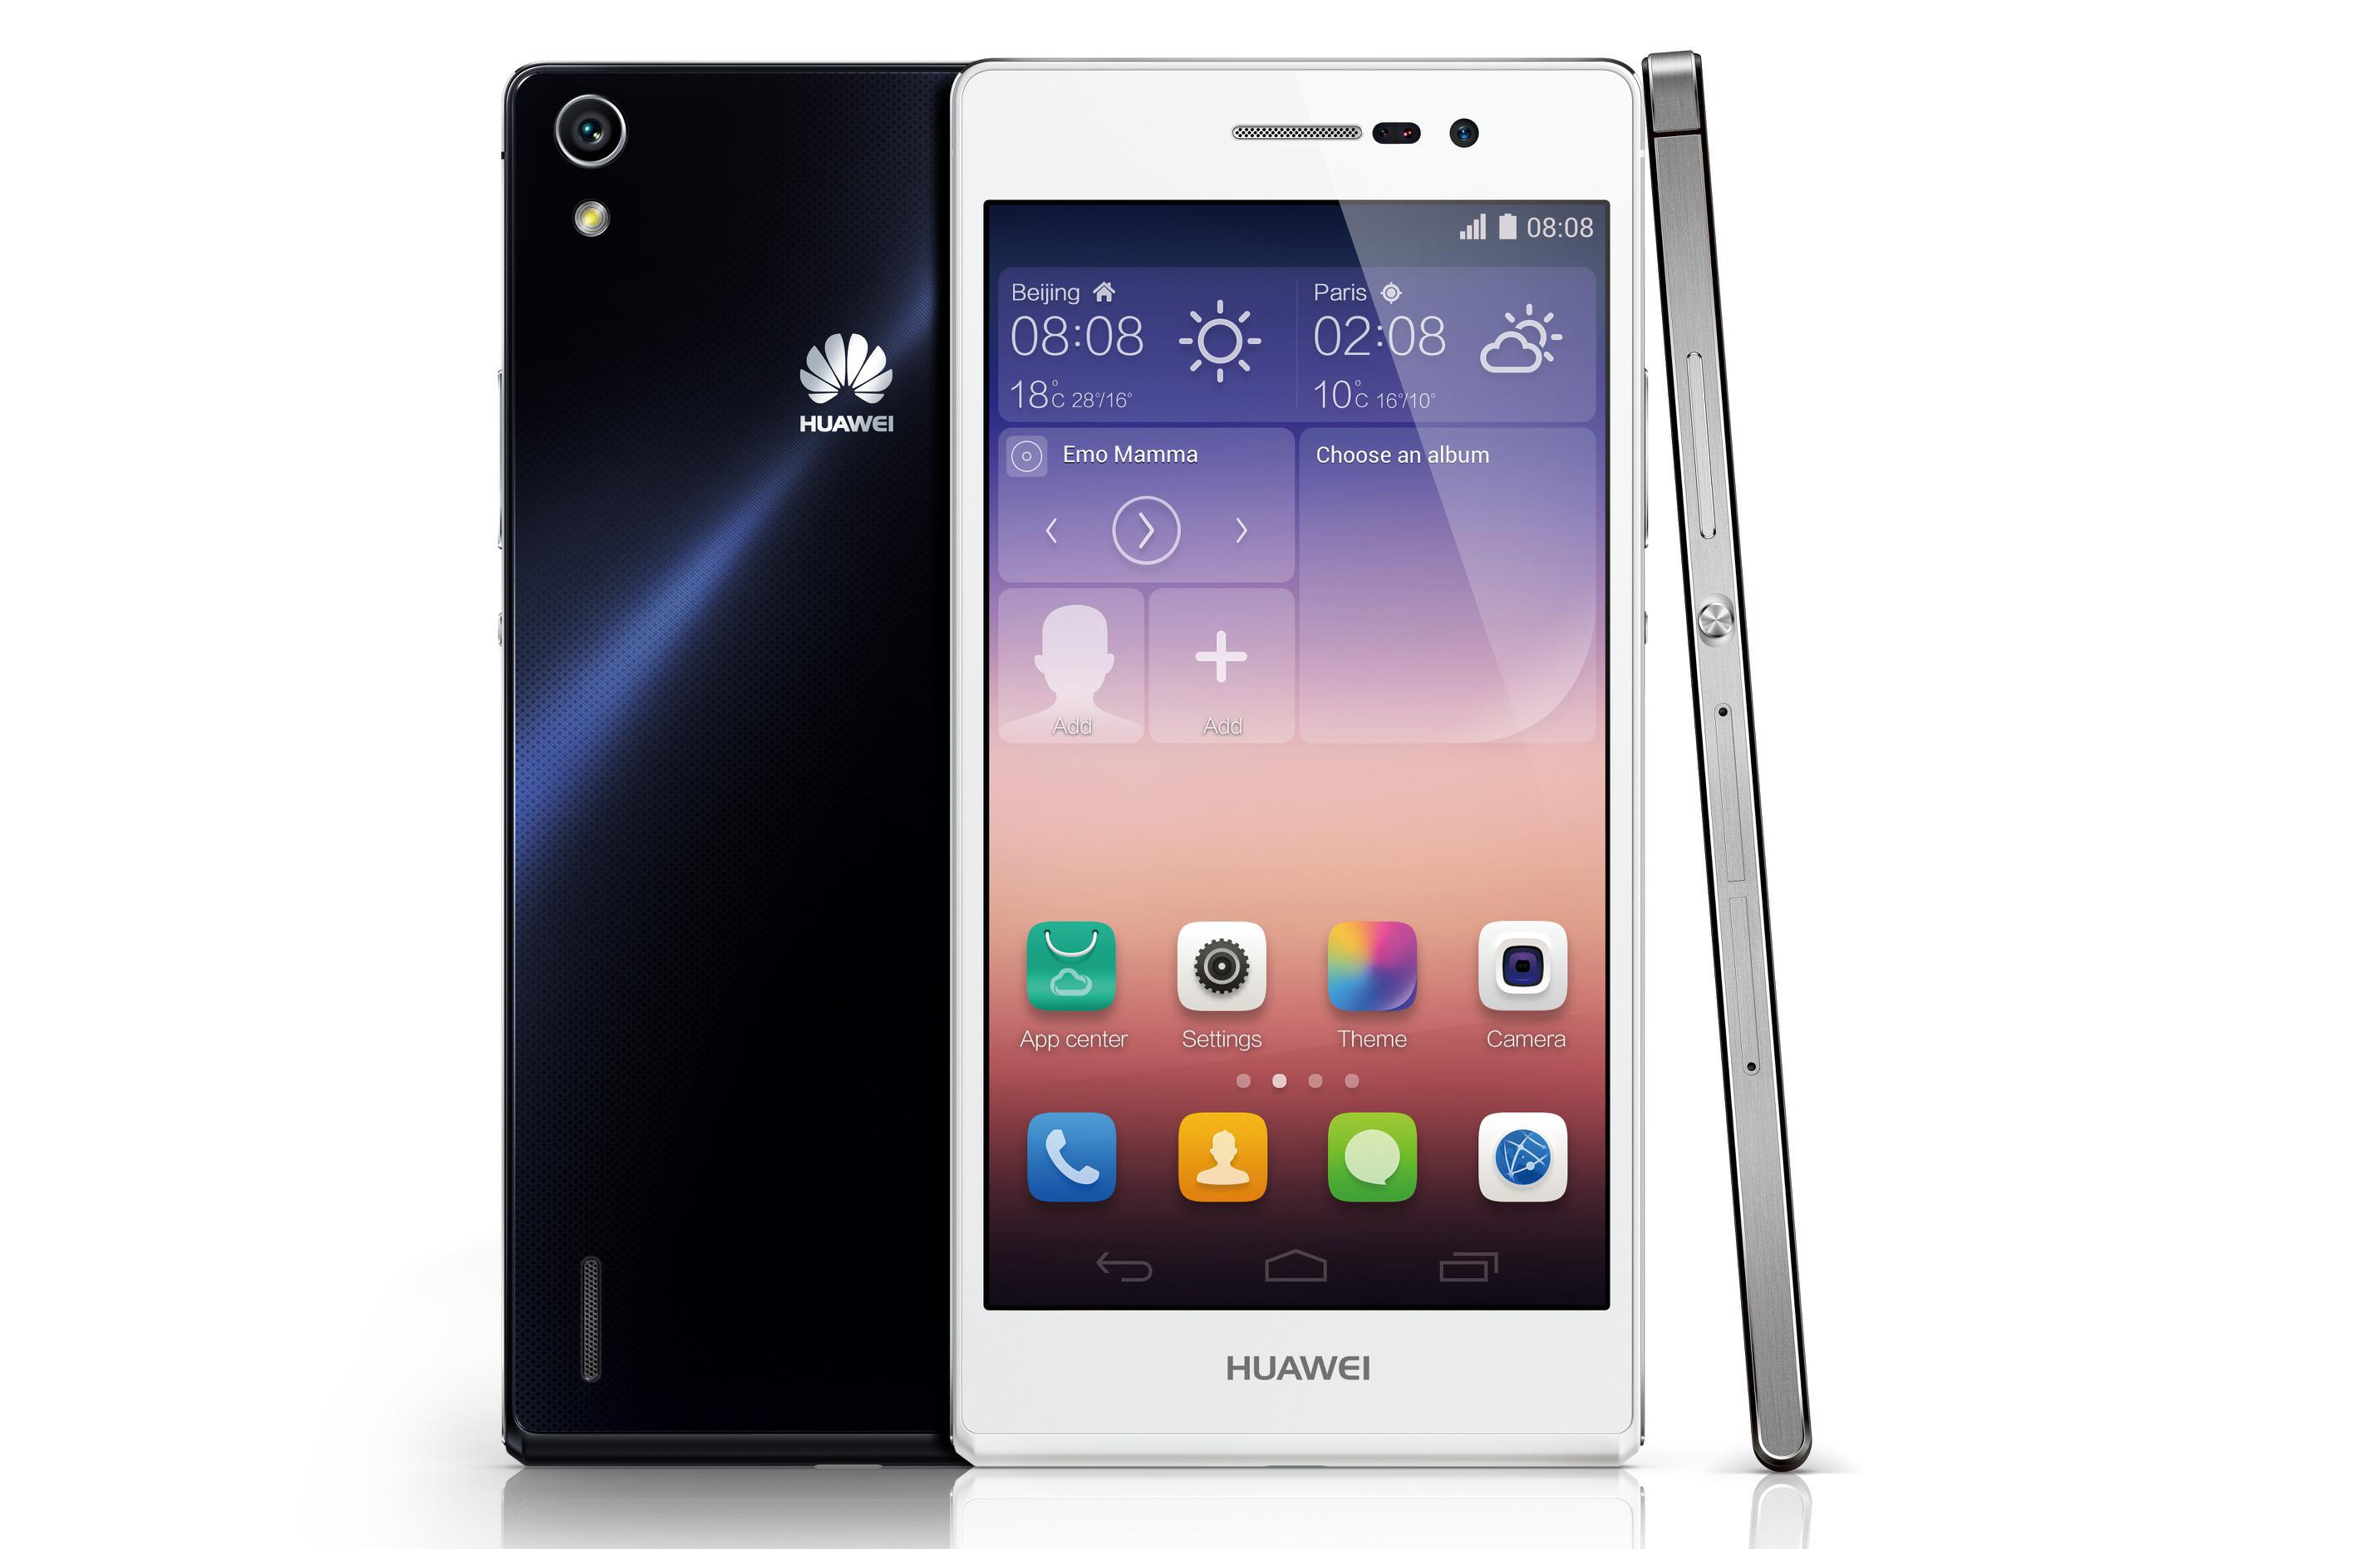 8. Huawei Ascend P7